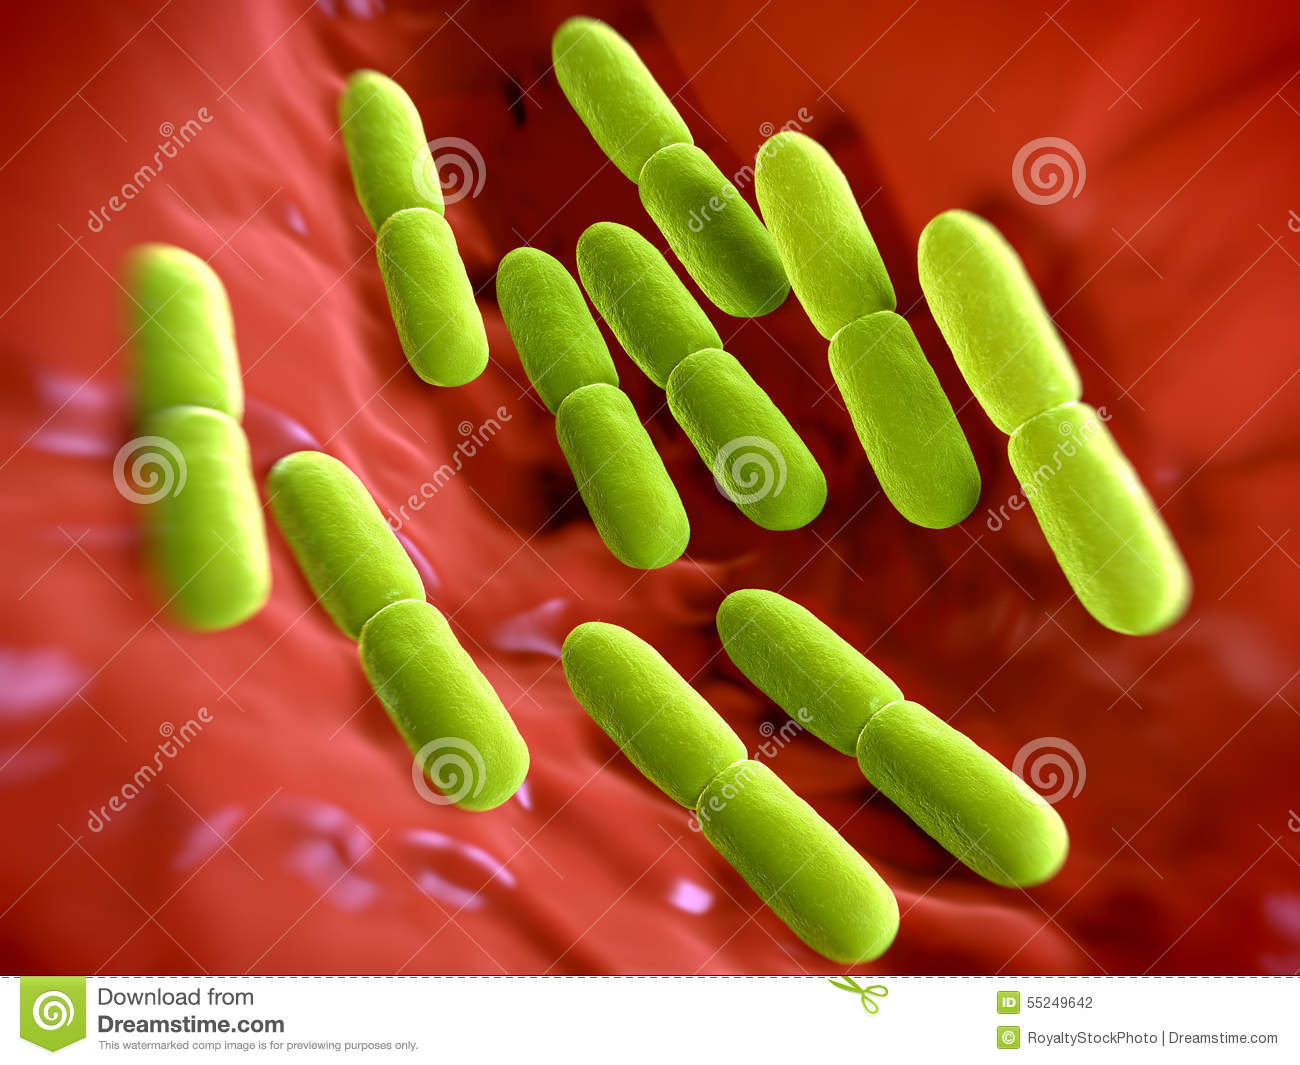 Lactobacillus Bulgaricus Bacteria Stock Illustration - Image: 55249642